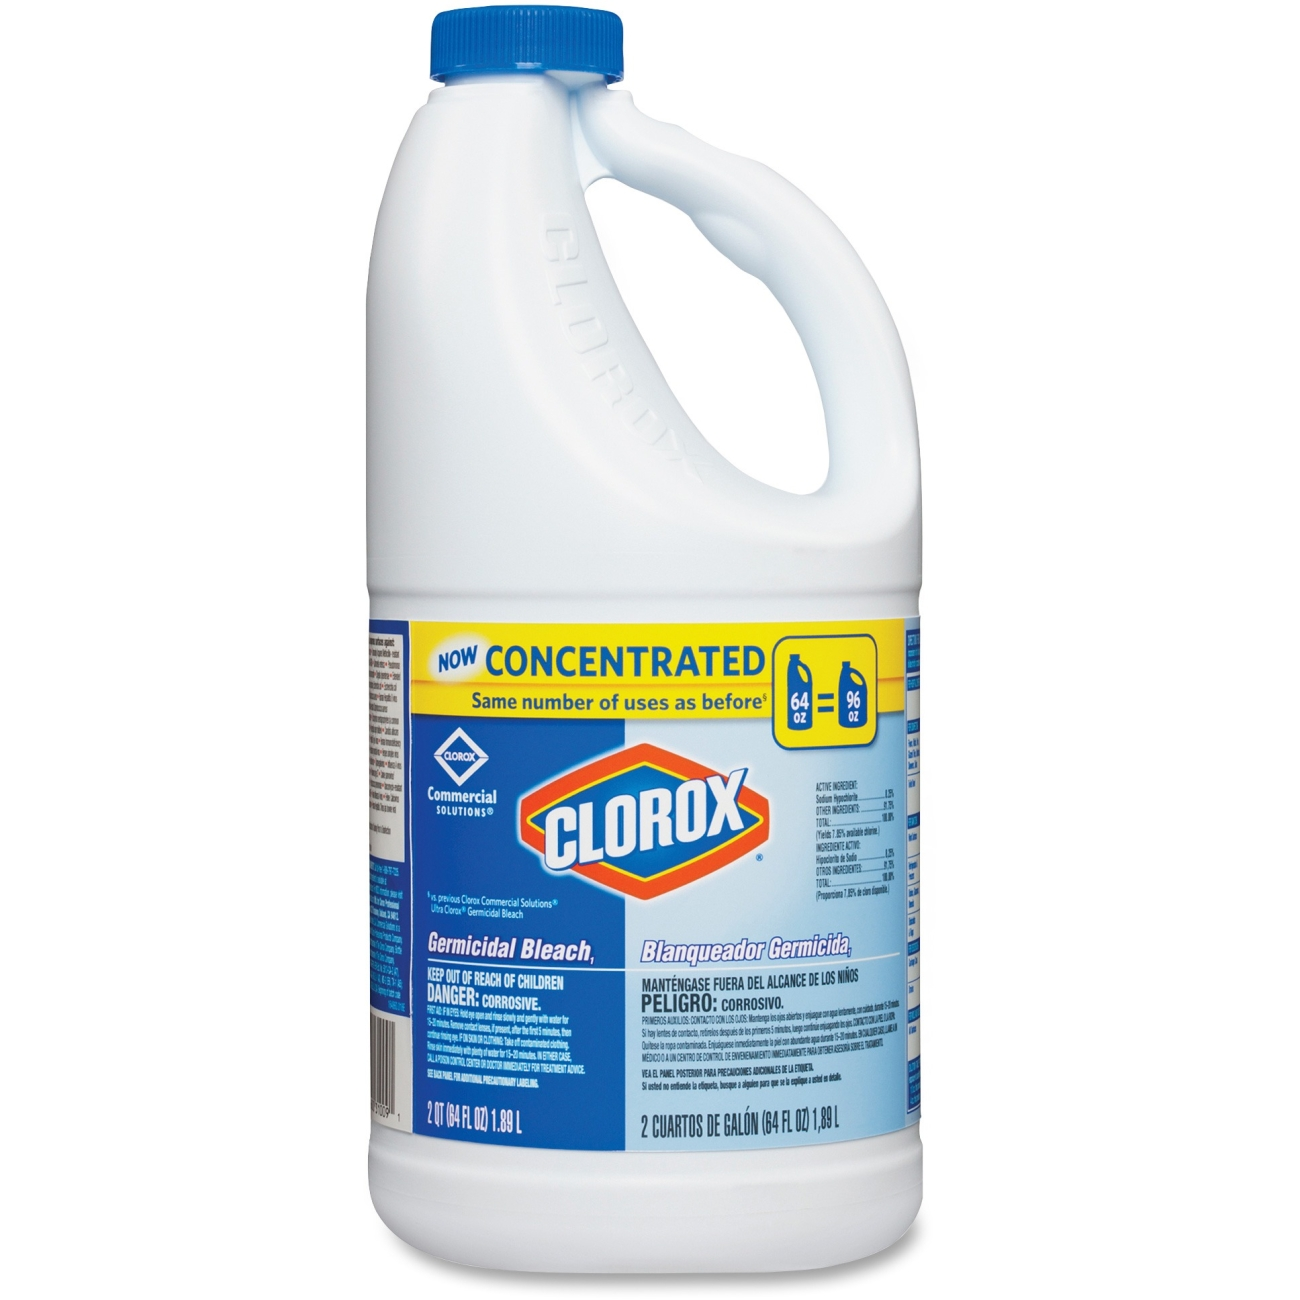 Clorox Cleaning and Janitorial Supplies